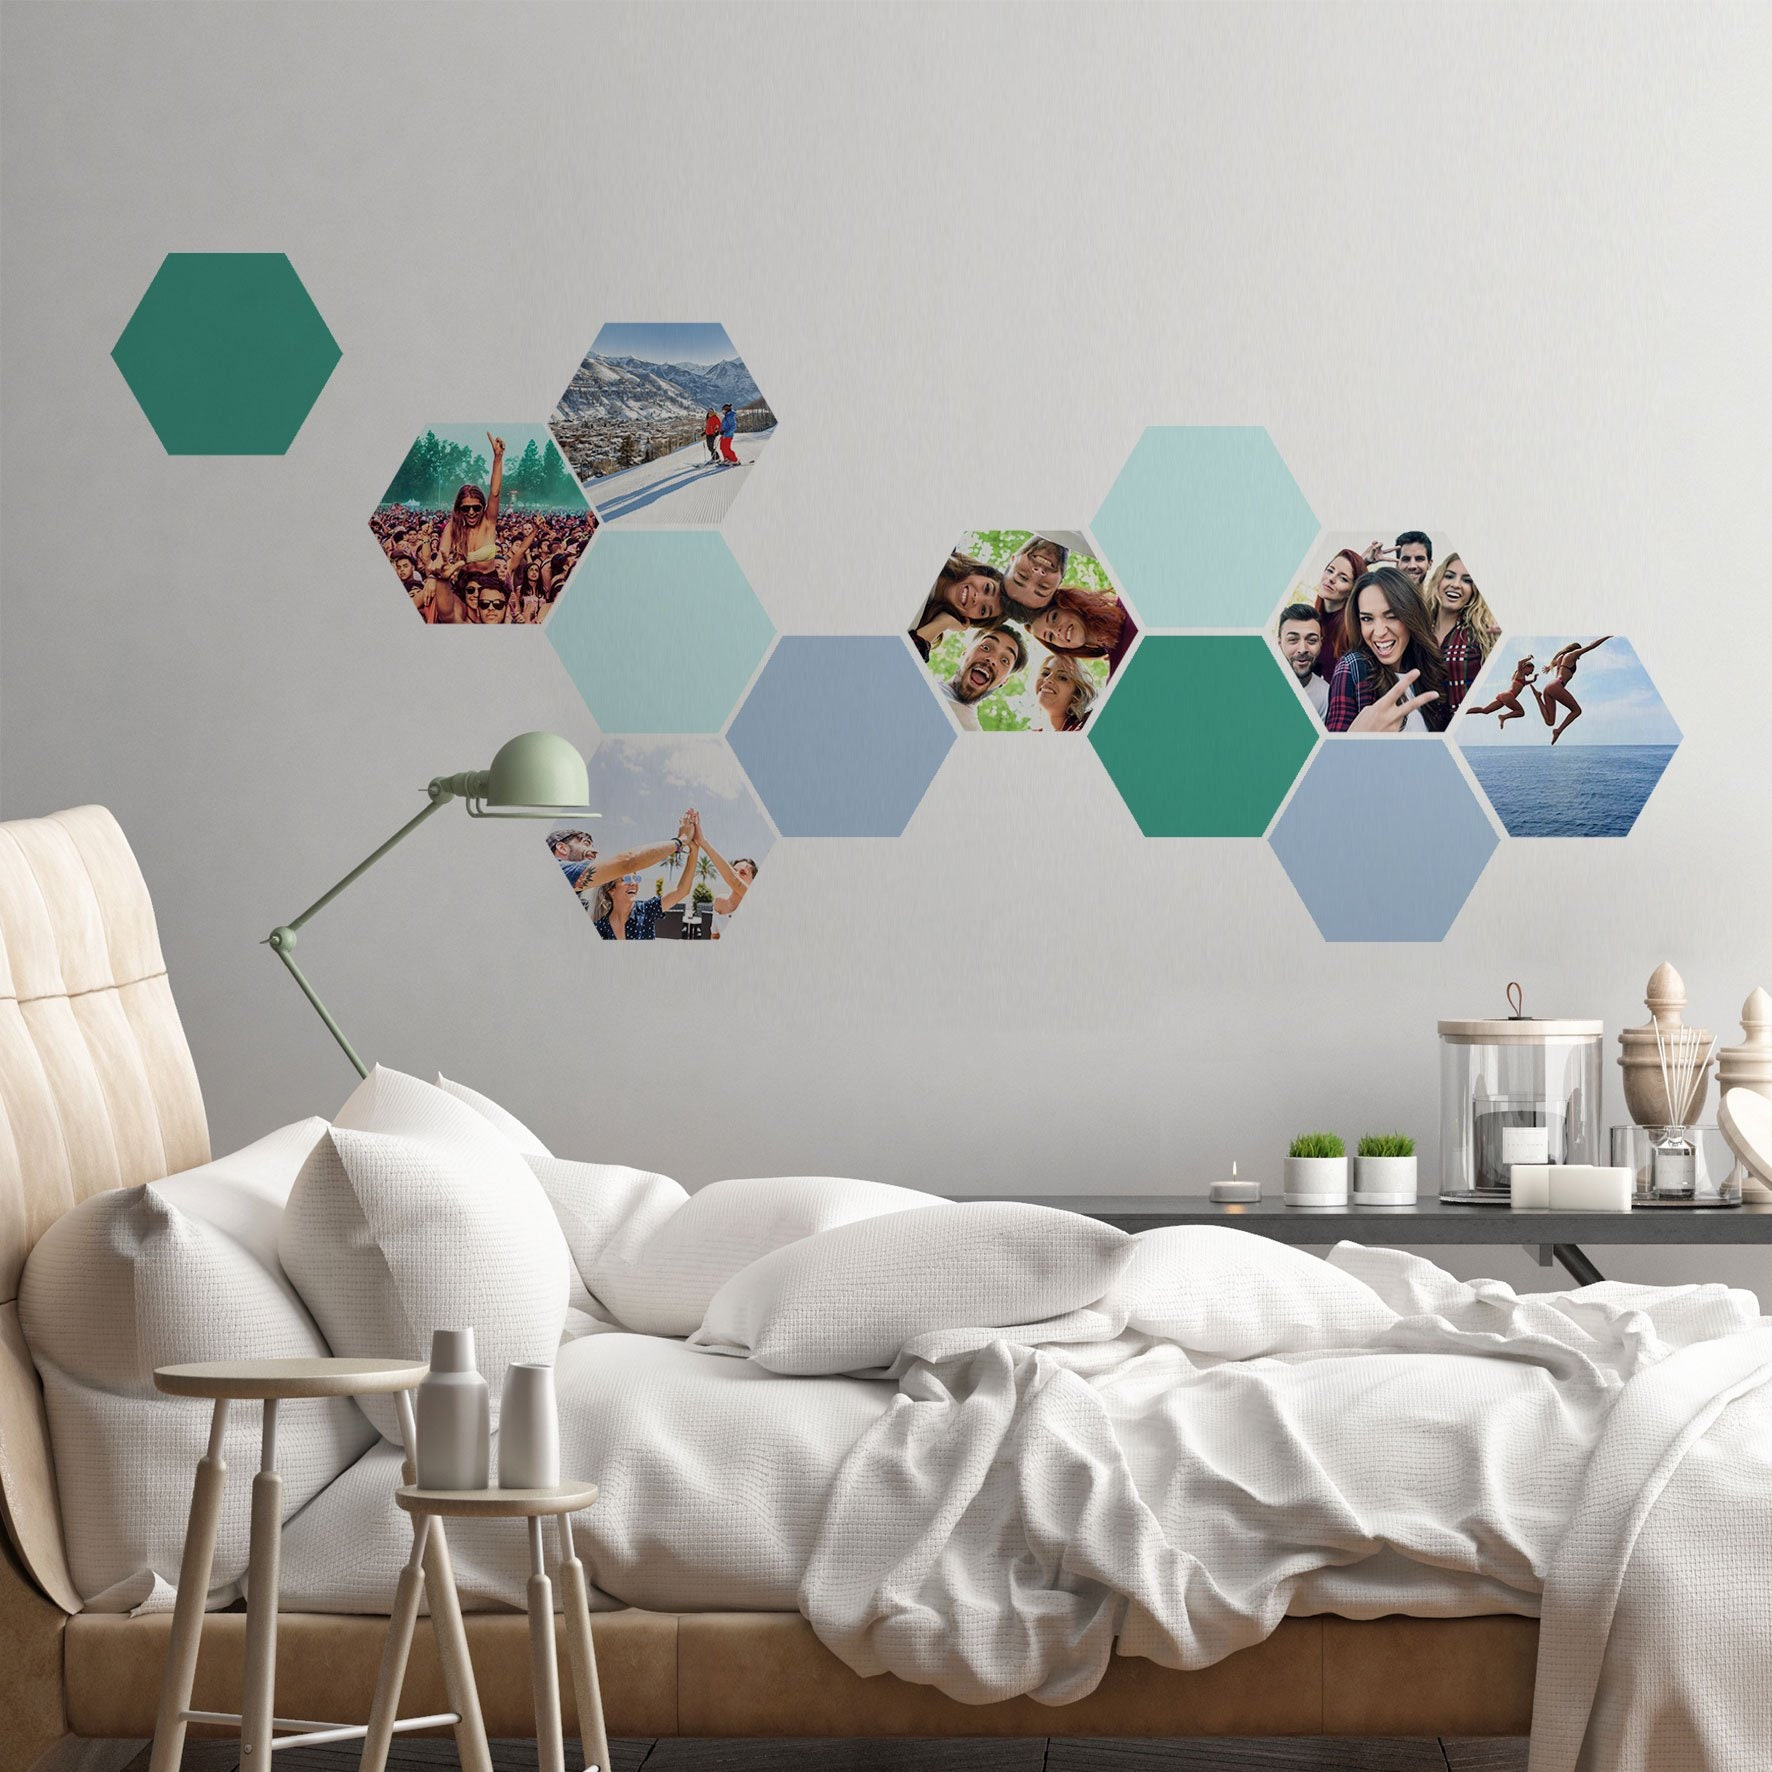 Custom photo honeycombs 12 large hexagon stickers 6 photos and 6 plain coloured removable stickers great birthday or christmas present